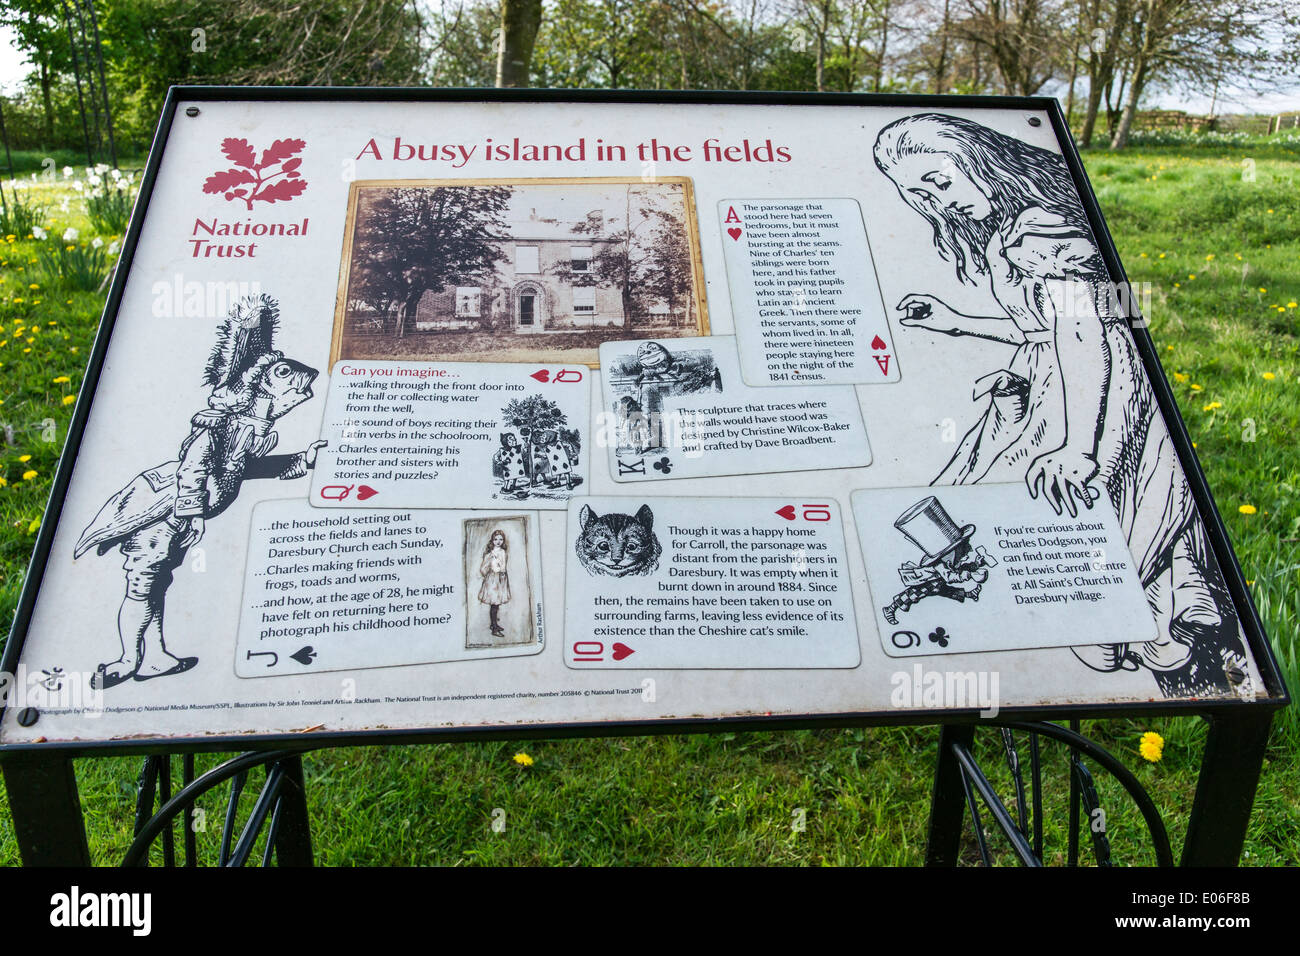 Daresbury was the birthplace of Alice's Adventures in Wonderland author Lewis Carroll. - Stock Image